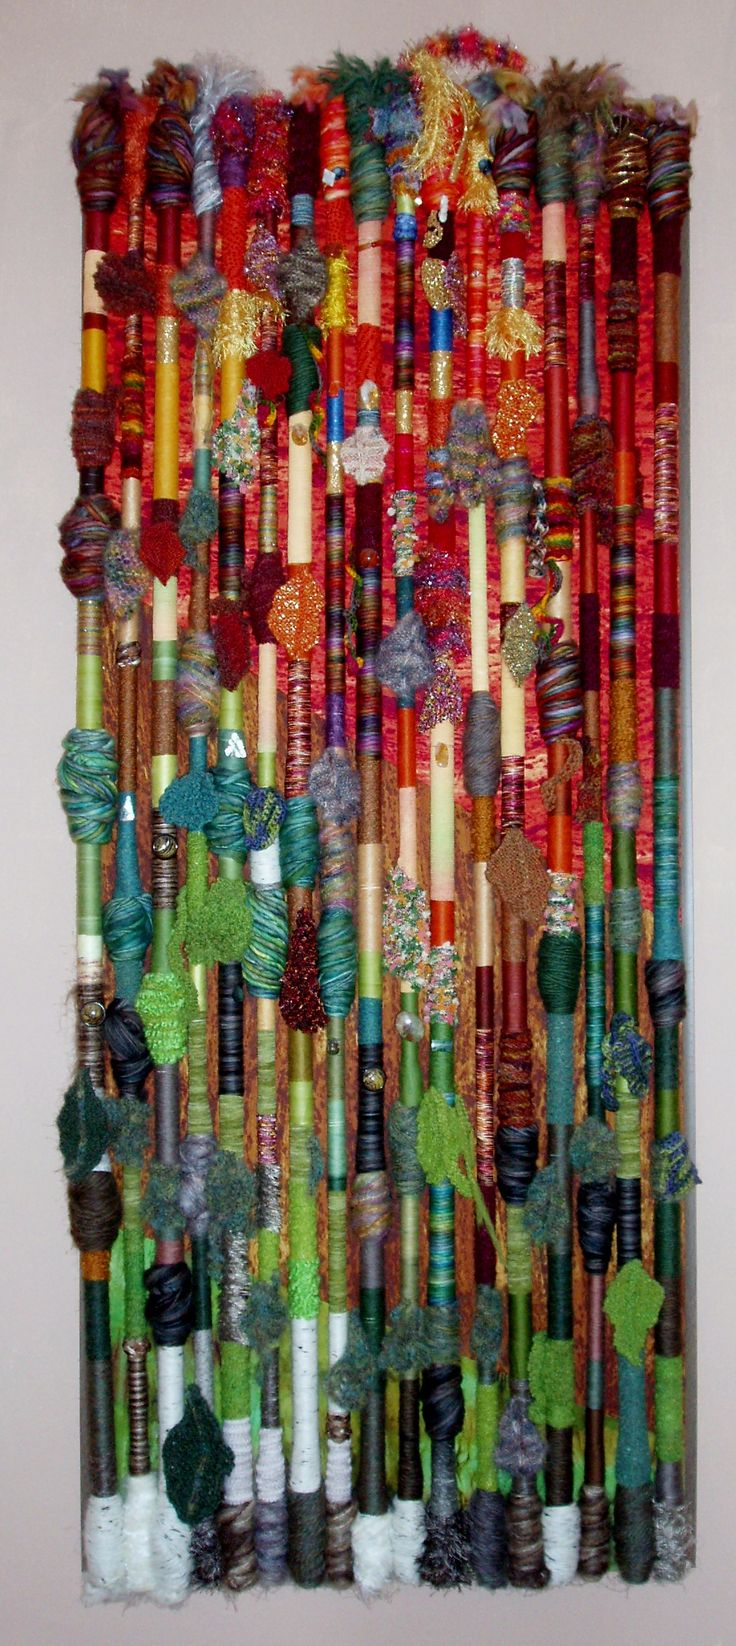 Fiber Art Wall Hanging - Fall in the Northland.